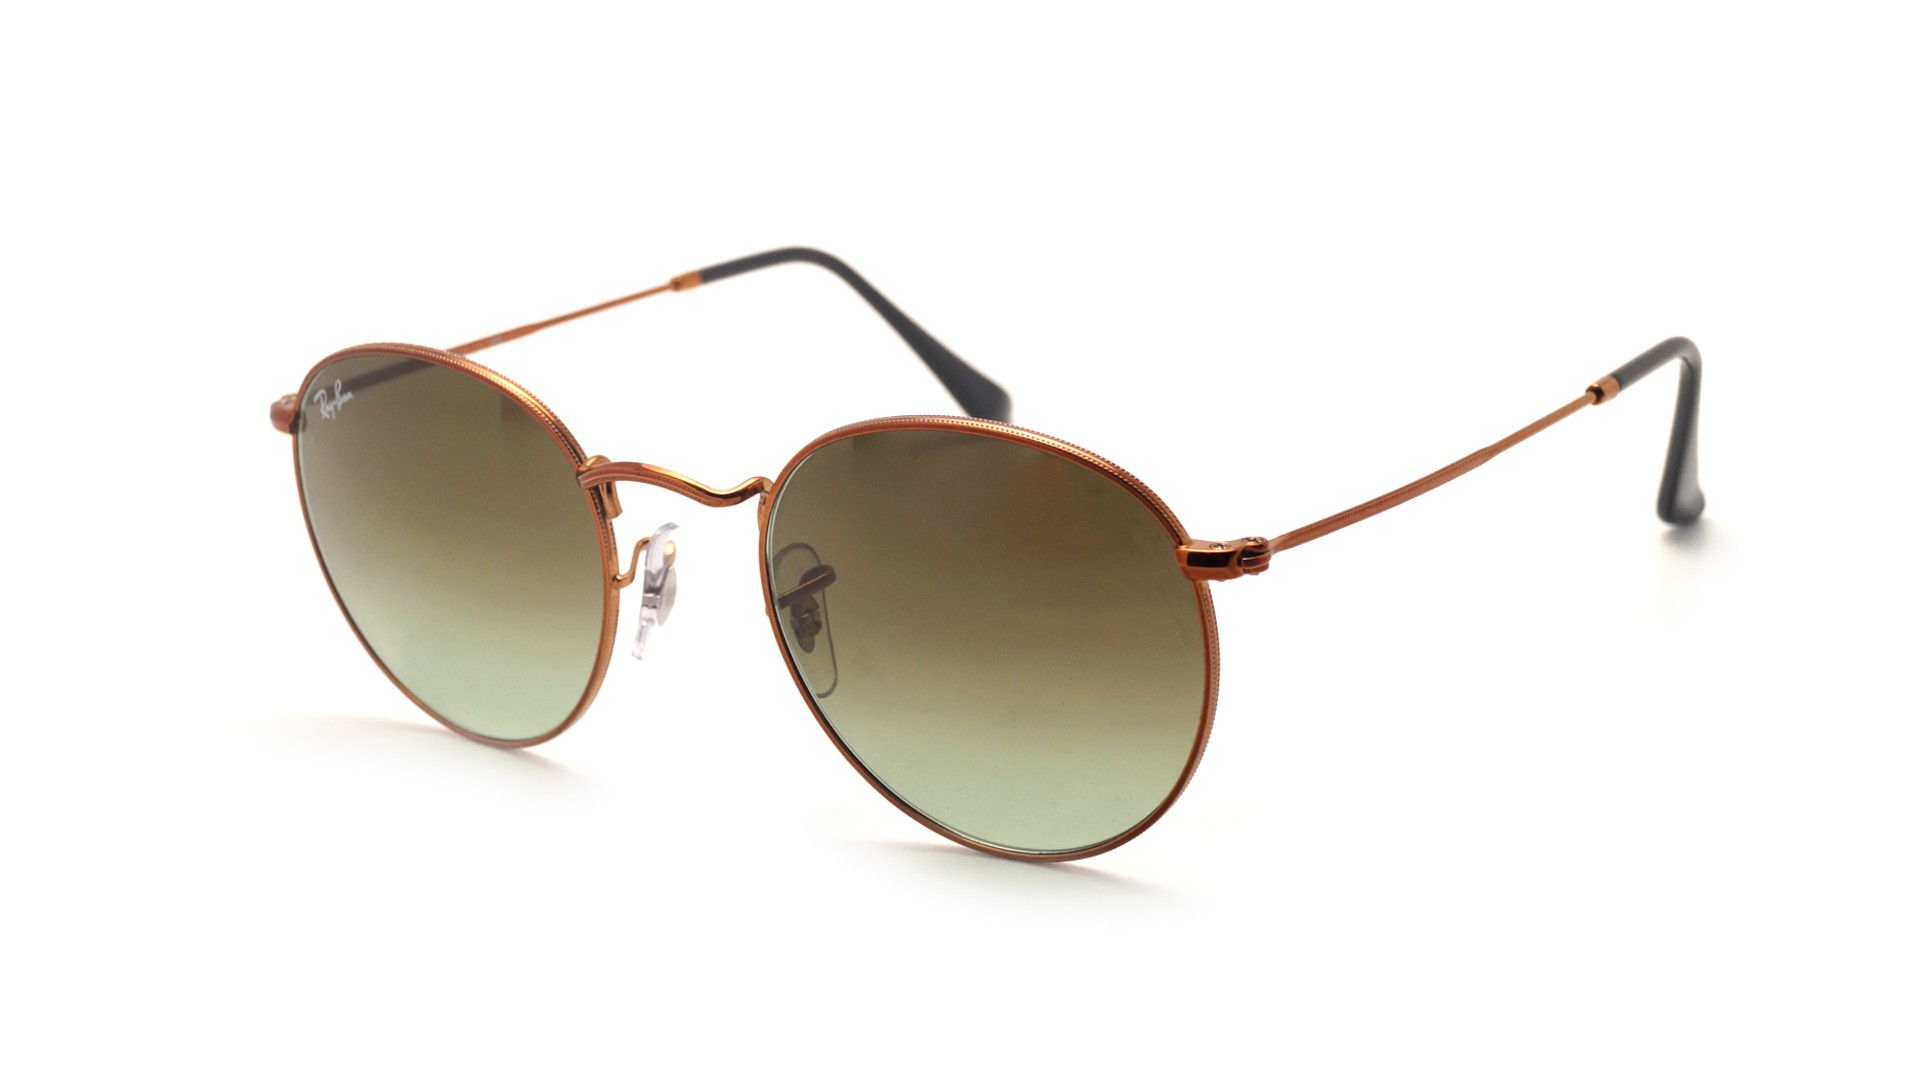 596b294382 Sunglasses Ray-Ban Round Metal Brown RB3447 9002/A6 50-21 Medium Gradient